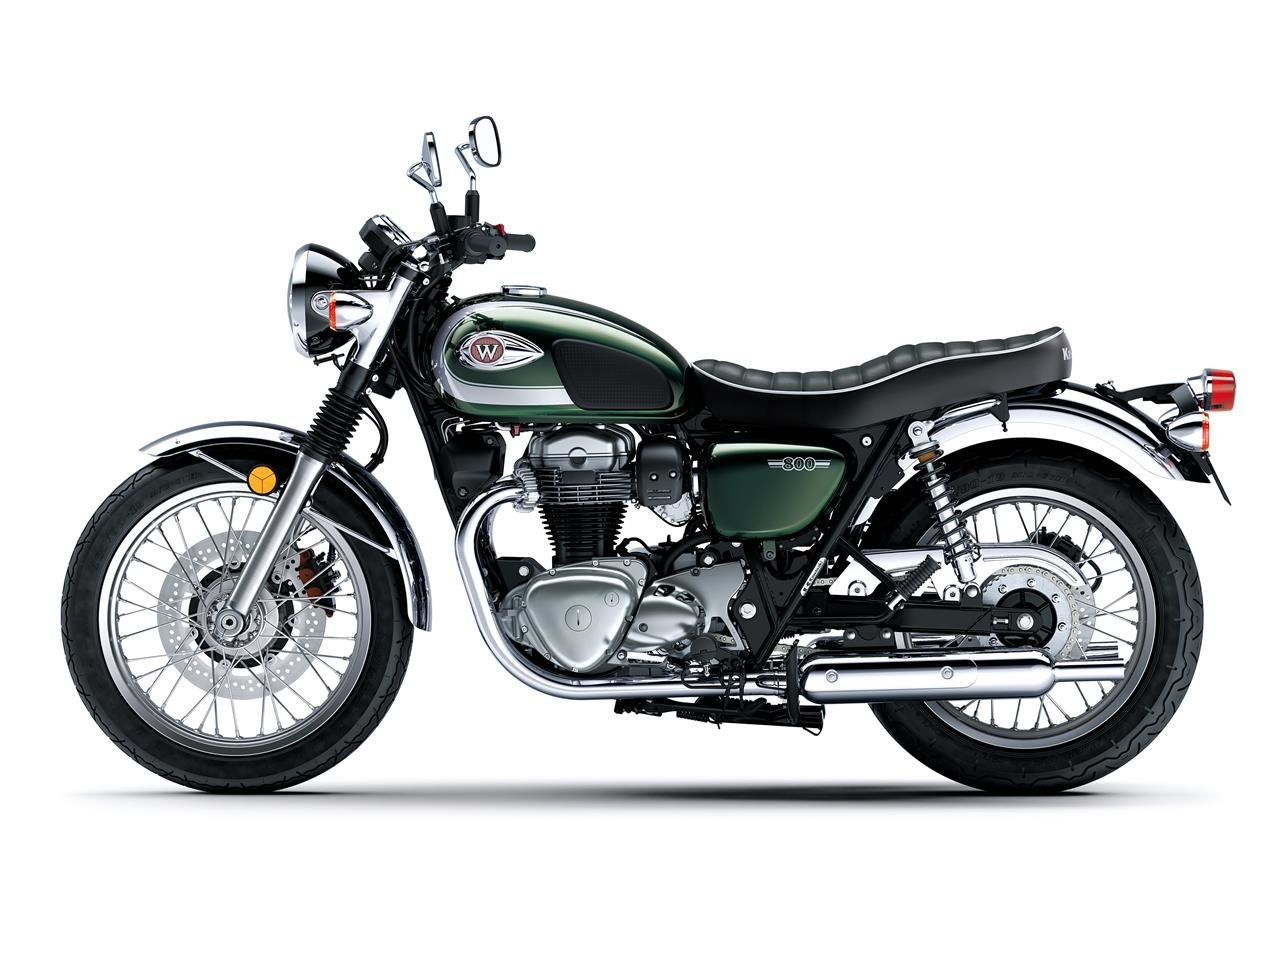 New 2020 Kawasaki W800 ABS **IN STOCK WITH FREE DELIVERY** For Sale (picture 3 of 6)